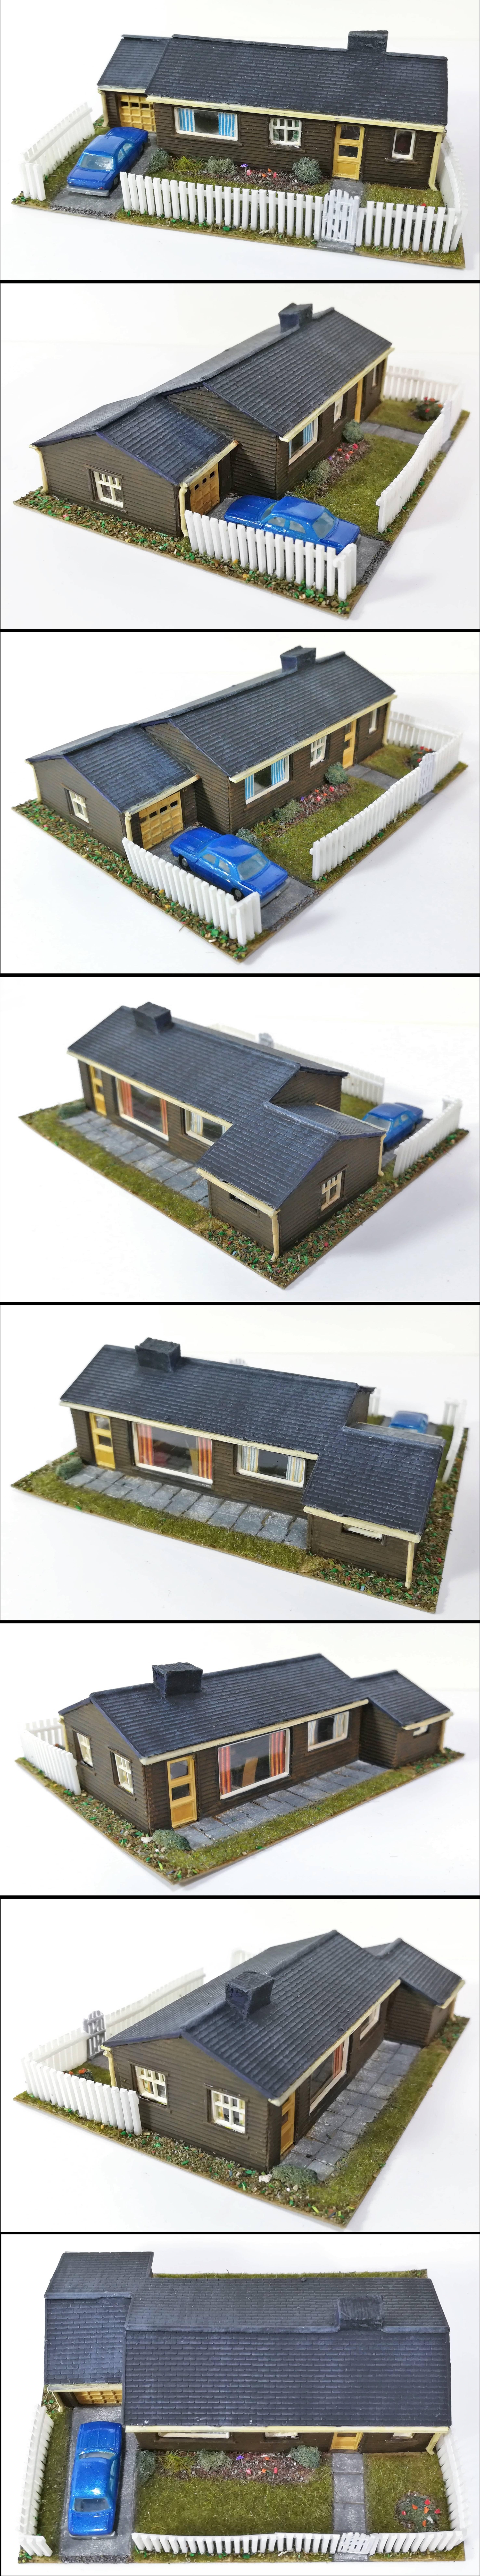 N-gauge bungalow final 1